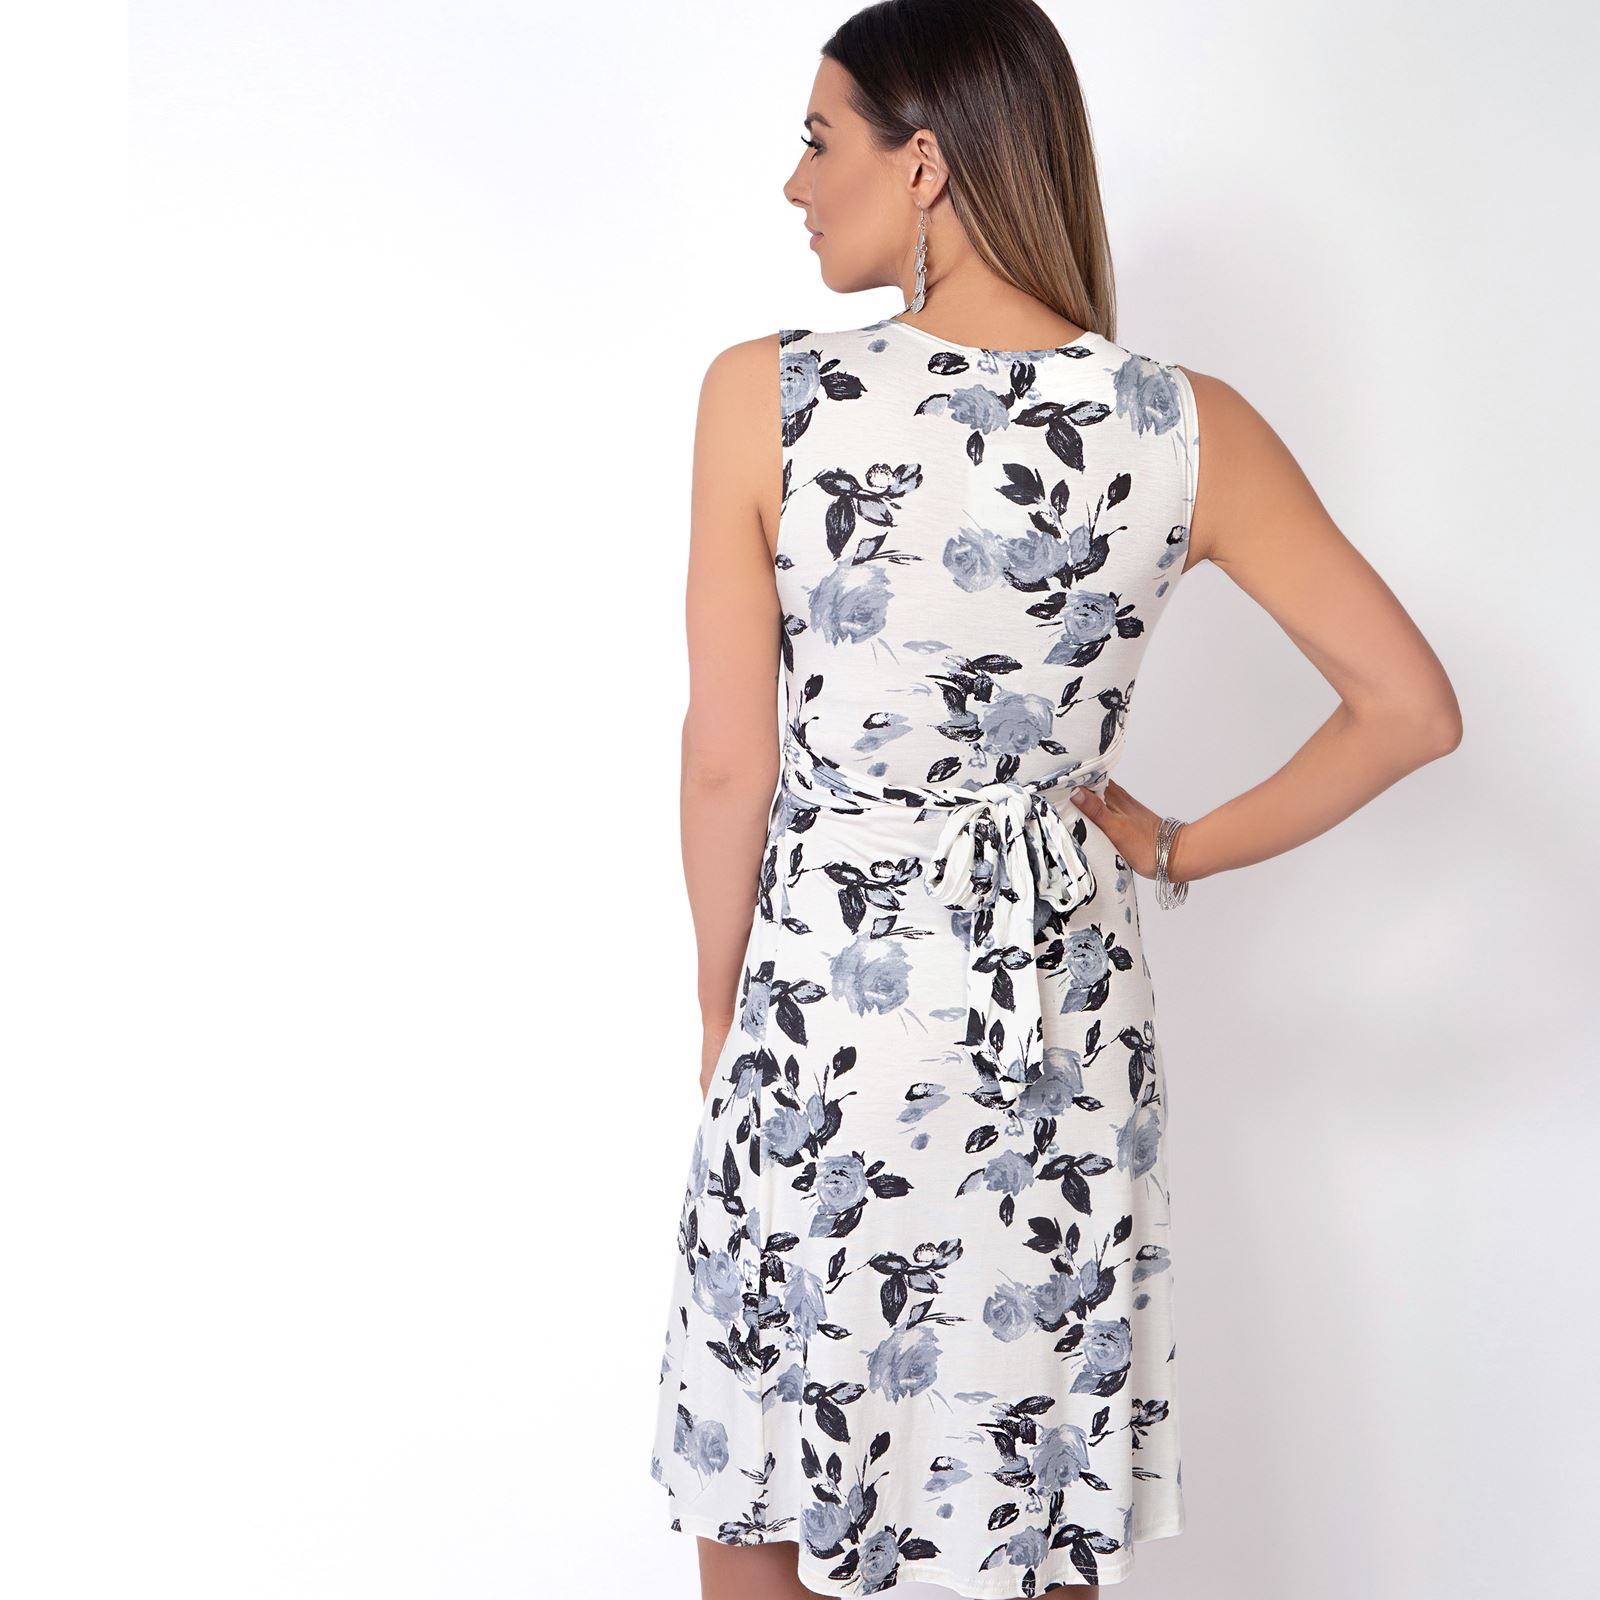 Womens-Floral-Print-Dress-Midi-Drape-Ruched-Front-Knot-Tie-Belt-Casual-Party thumbnail 7